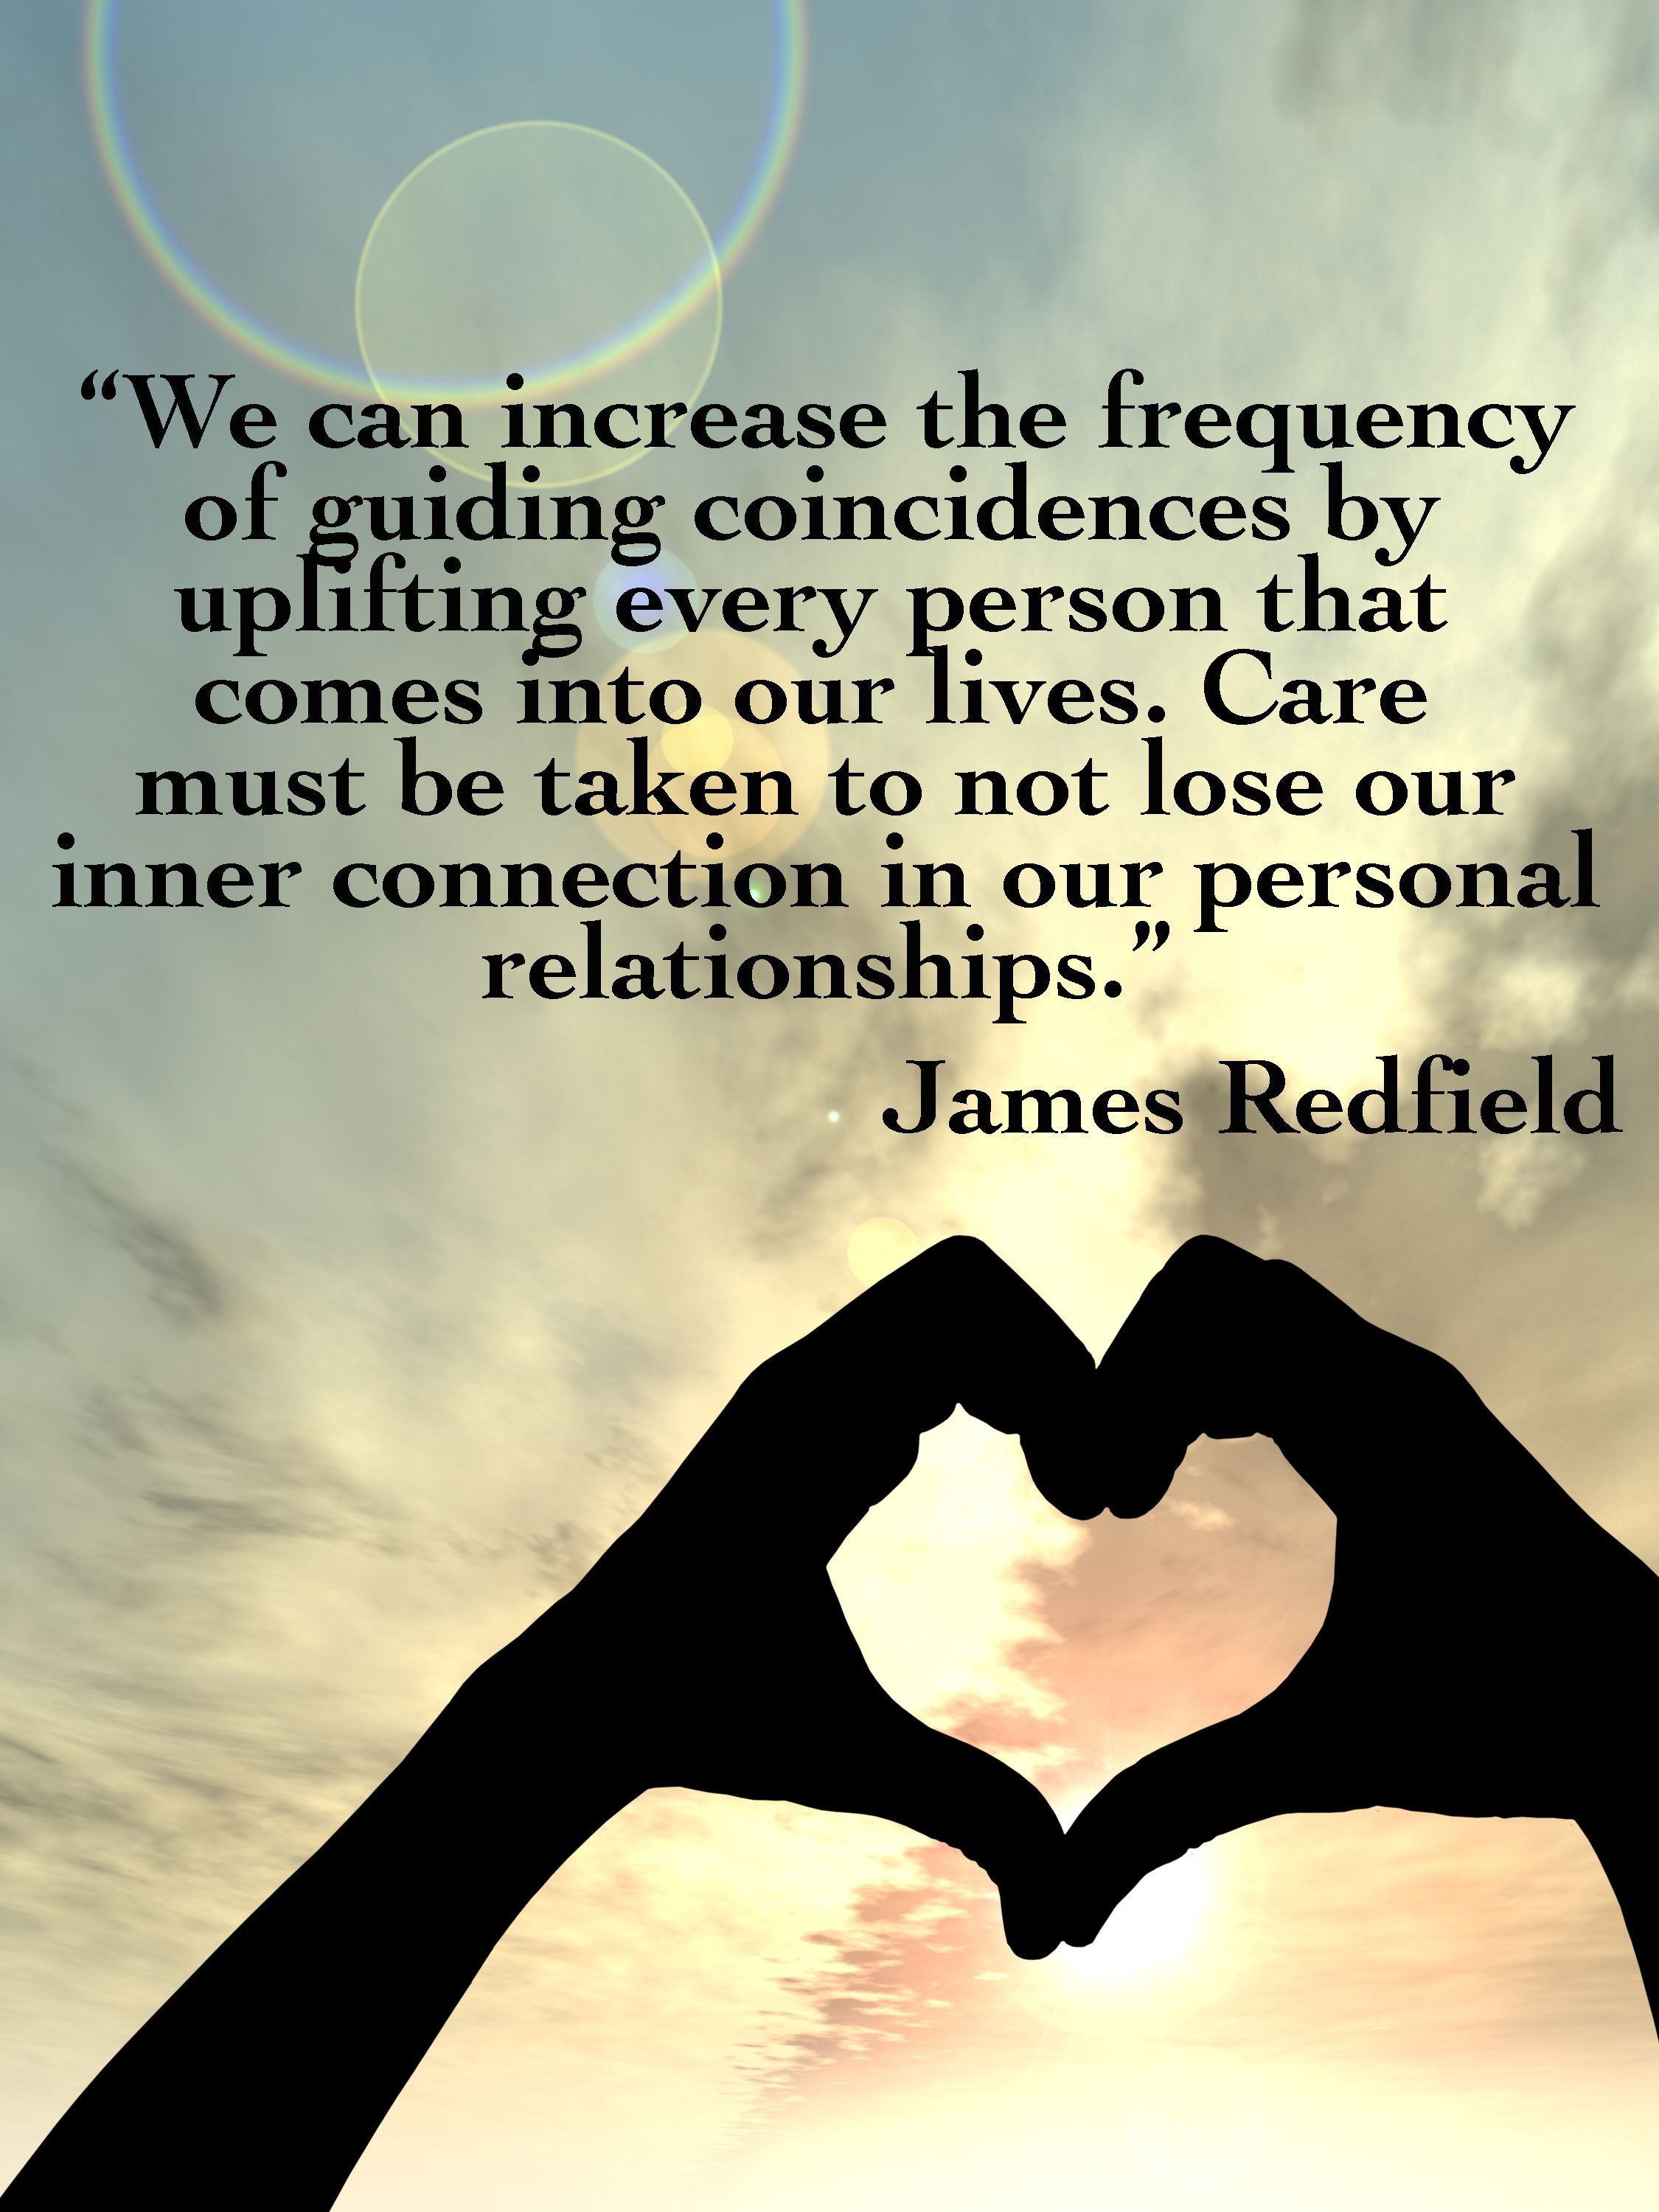 Spiritual Quotes On Love Classy Inspirational And Spiritual Quotesjames Redfield  Celestine